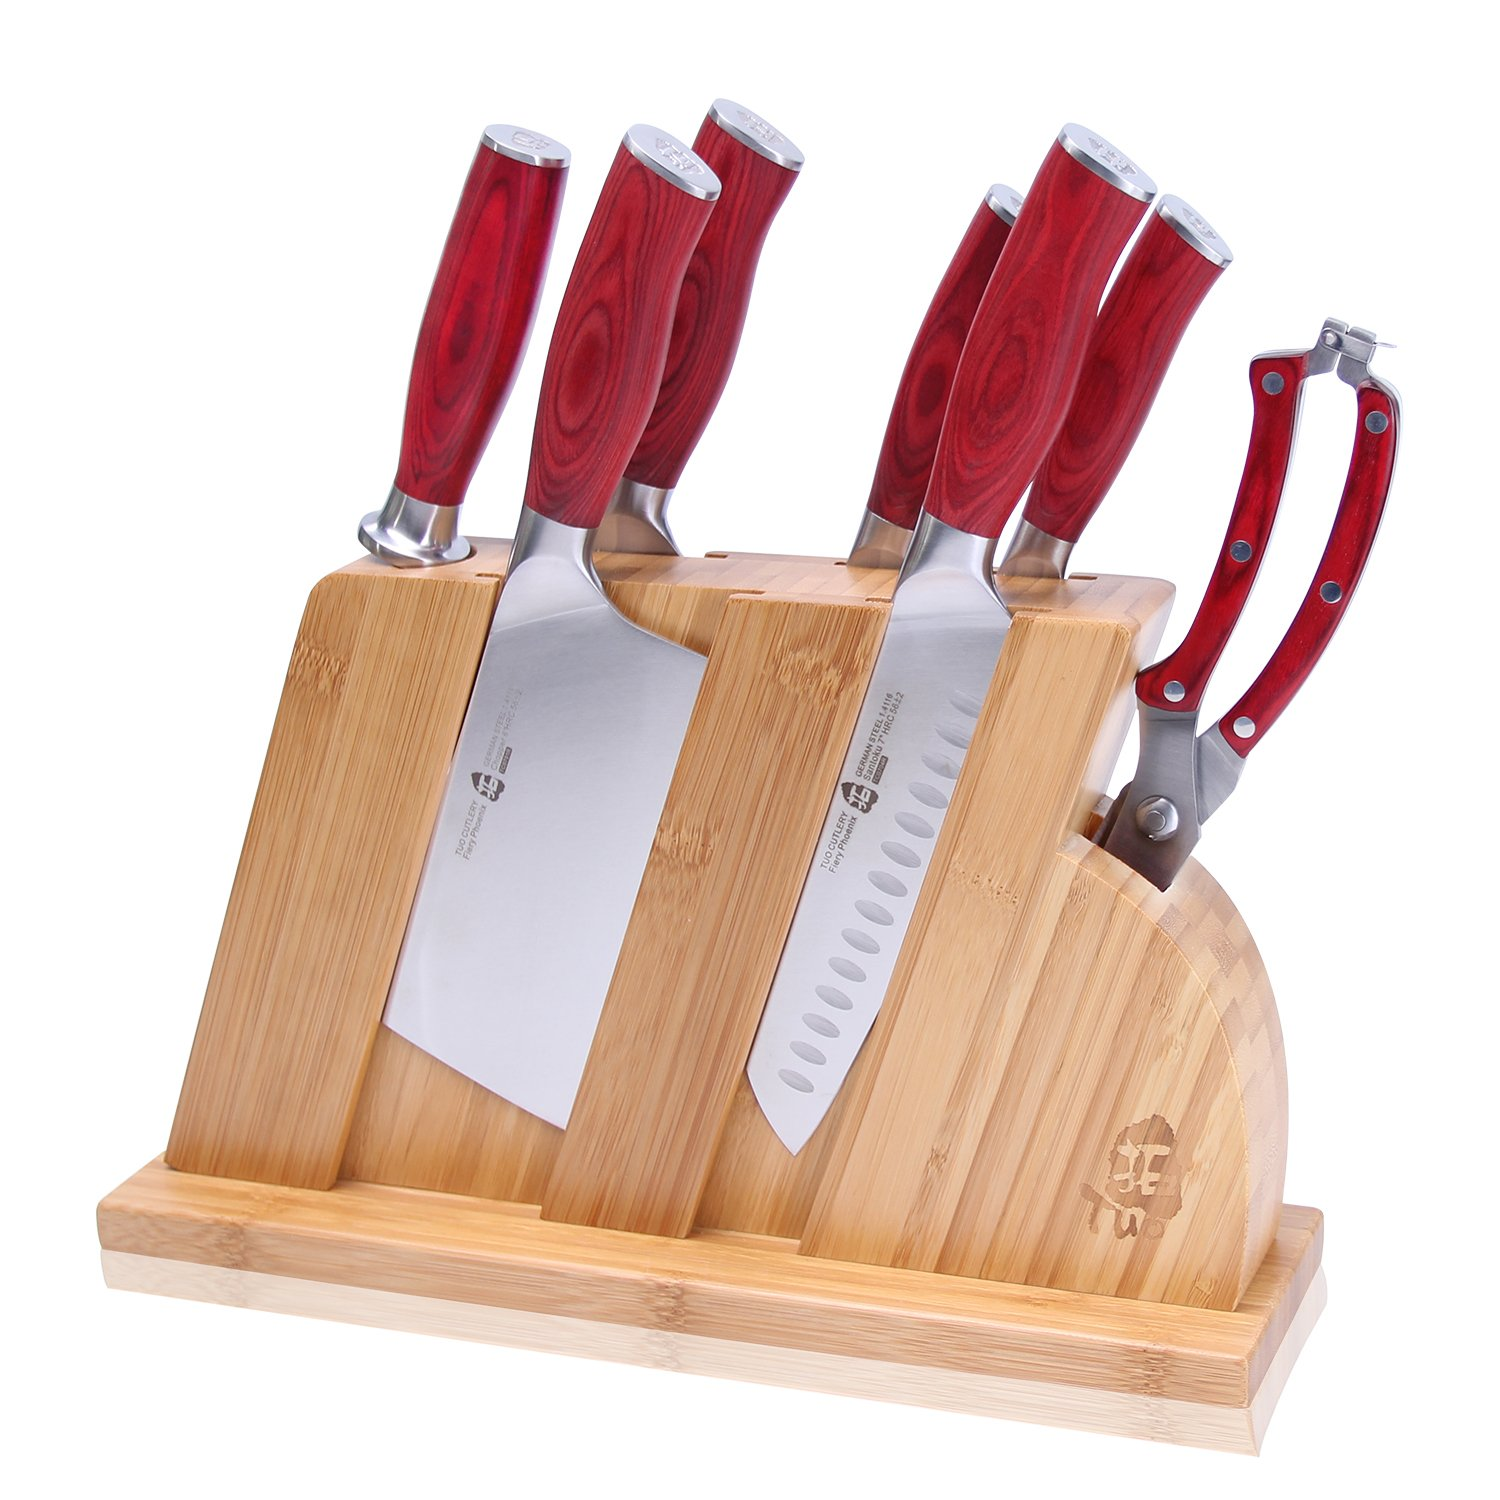 TUO Cutlery Fiery-R Series HC German Stainless Steel Kitchen Block Red Knife Set 8 PCS - Chef, Chopper, Utility, Paring, Santoku, Honing Steel, Shears and Knife Block with Pakkawood Handle